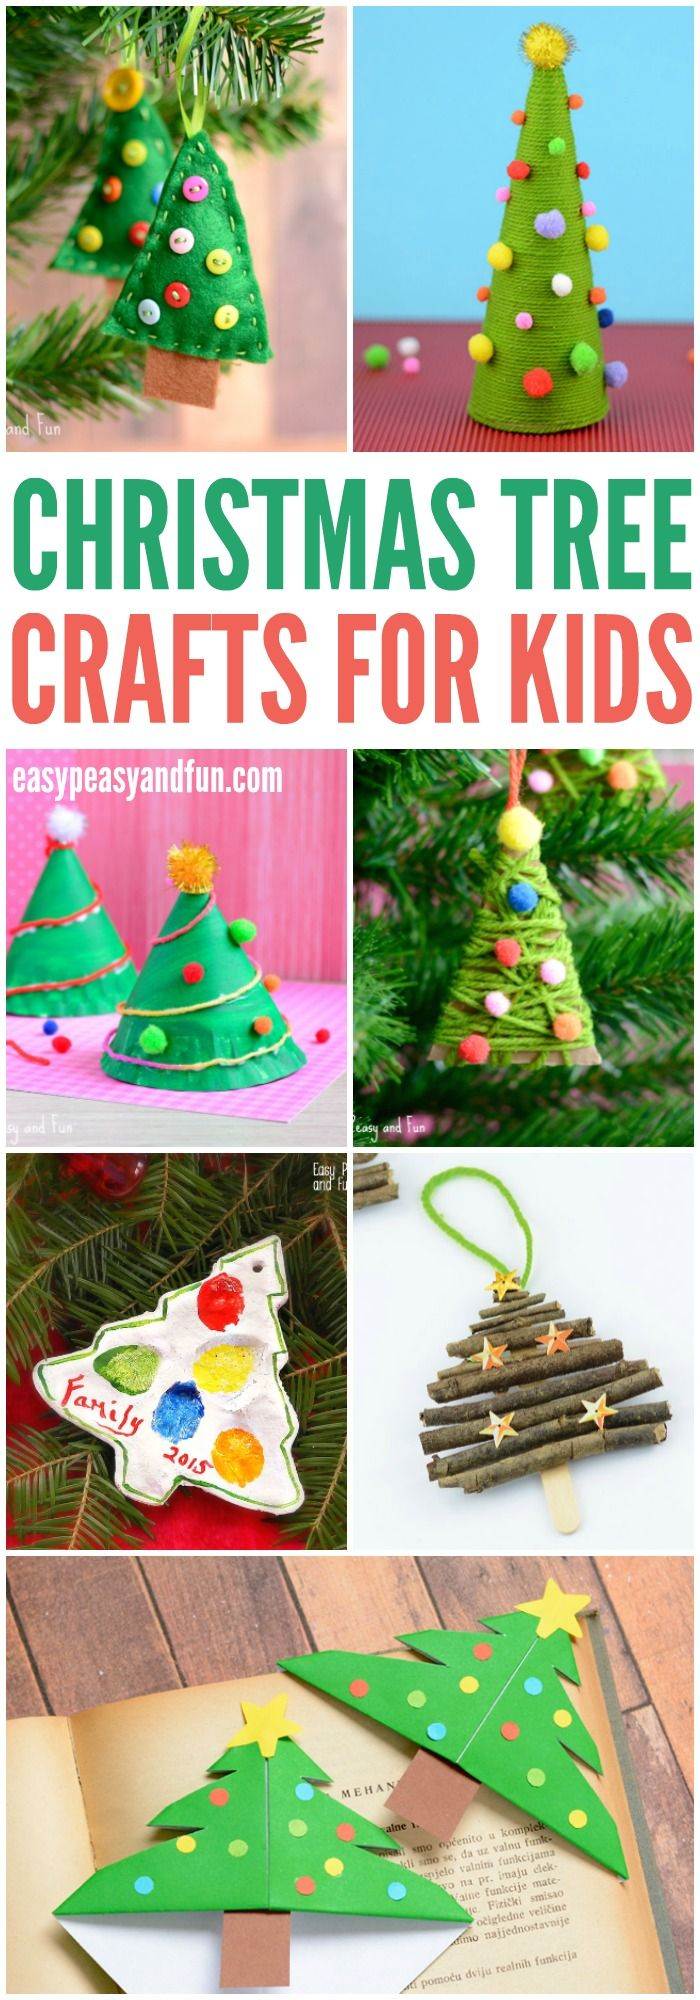 Cute Christmas Tree Crafts for Kids to Make